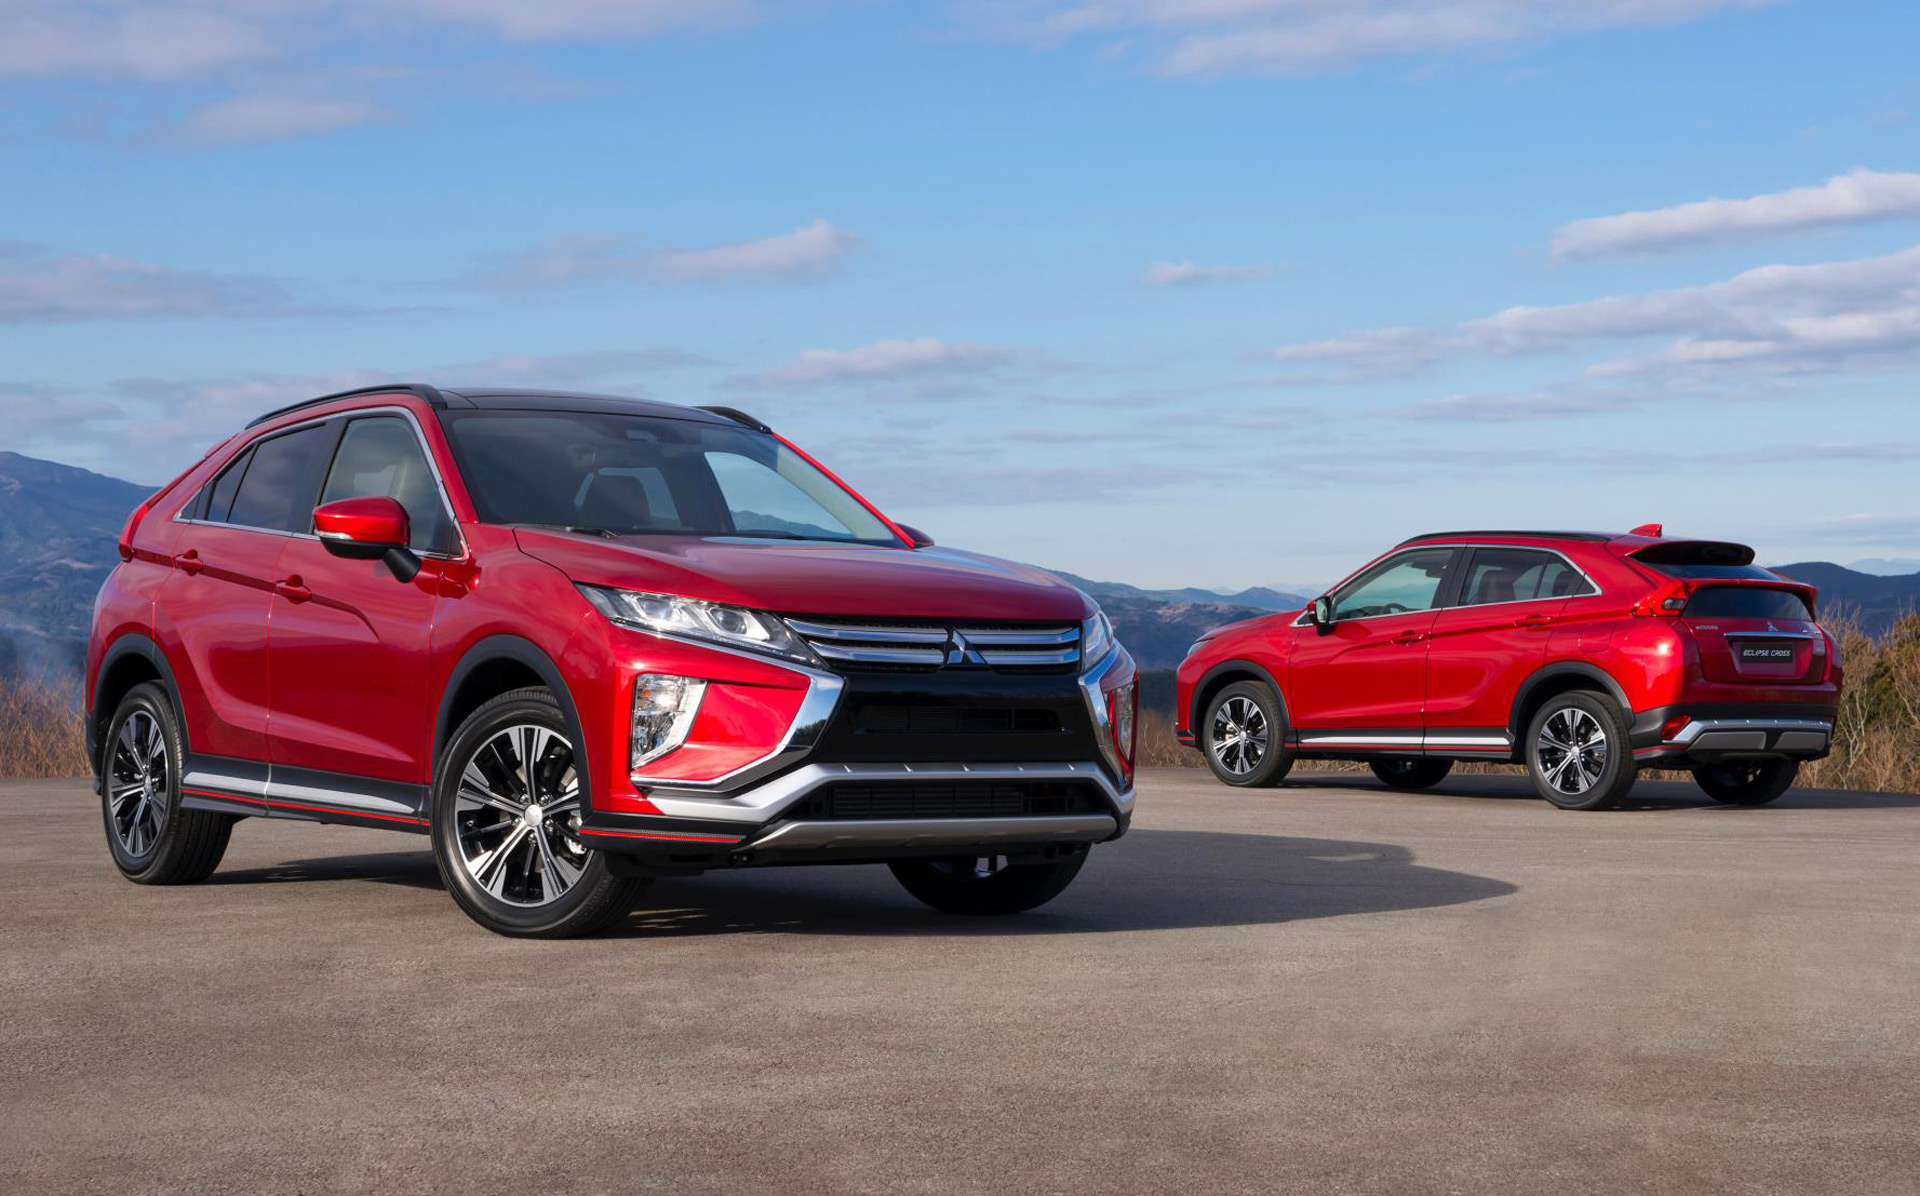 2018 mitsubishi eclipse cross revealed ahead of geneva debut. Black Bedroom Furniture Sets. Home Design Ideas